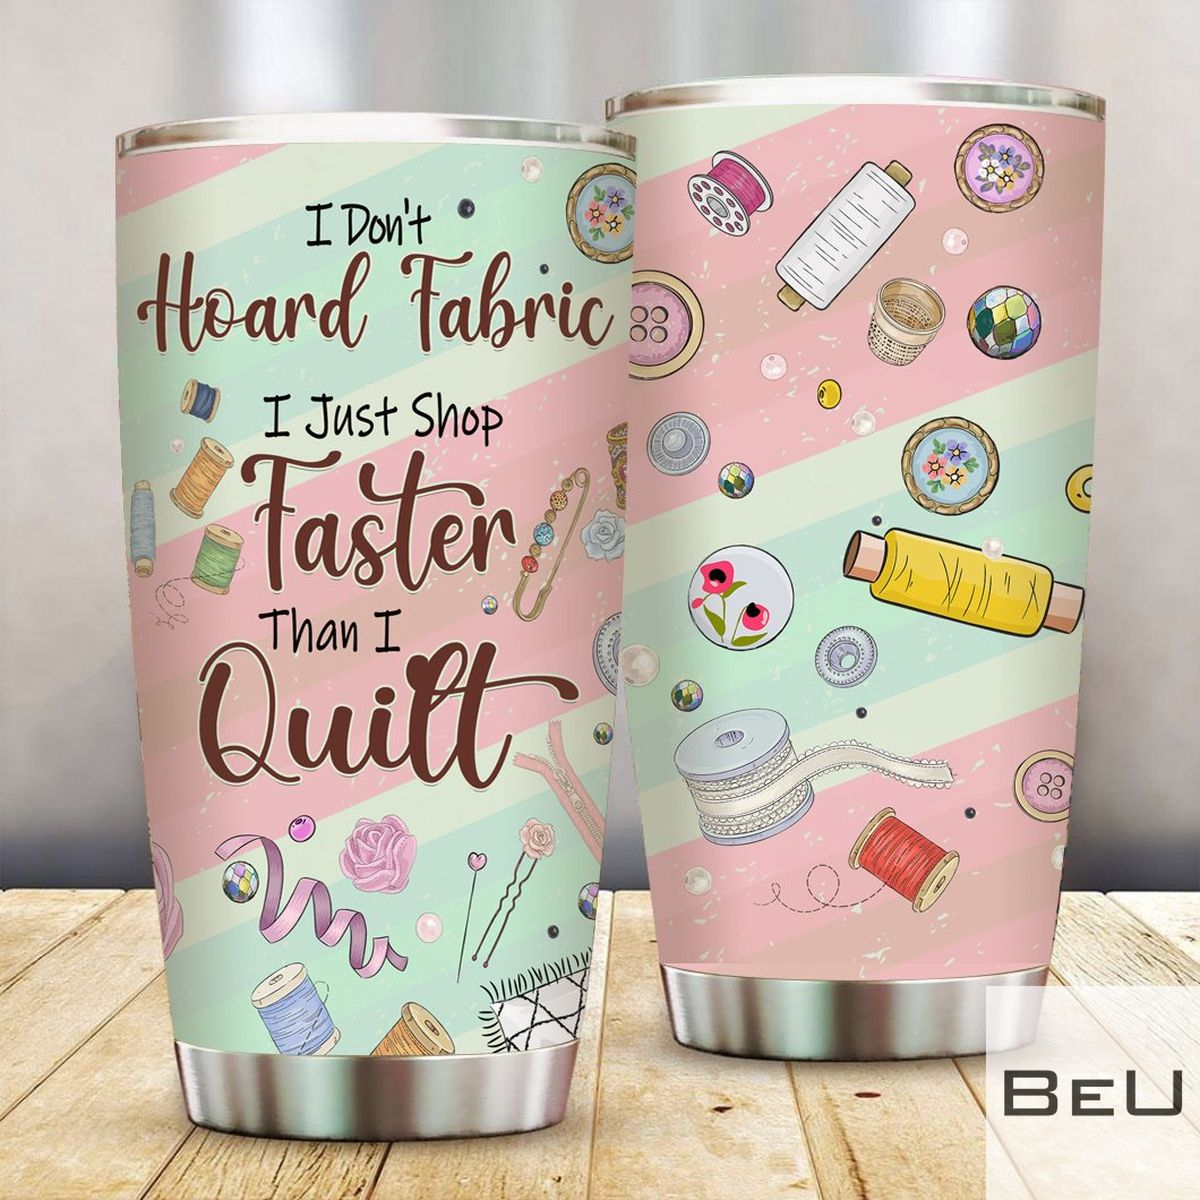 I Don't Hoard Fabric I Just Shop Faster Than I Quilt Tumbler